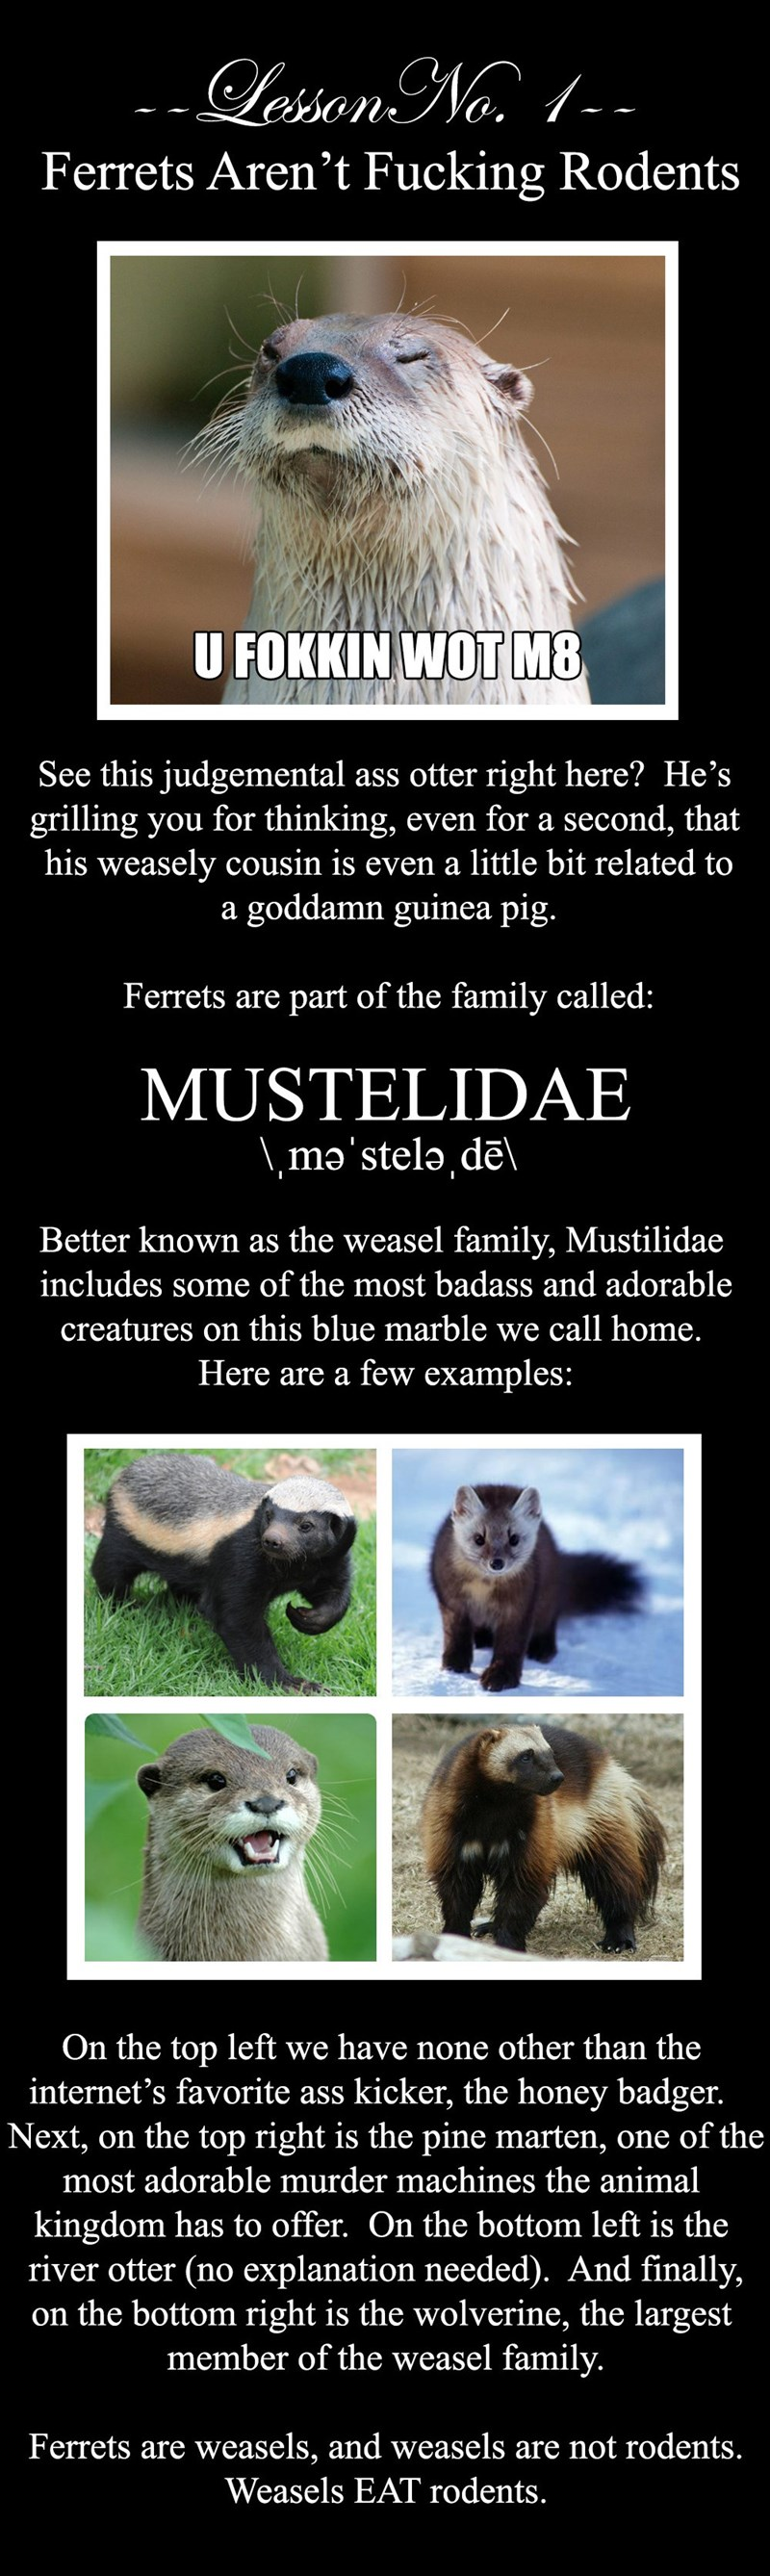 Wildlife - essonNo1-- Ferrets Aren't Fucking Rodents U FOKKIN WOT M8 See this judgemental ass otter right here? He's grilling you for thinking, even for a second, that his weasely cousin is even a little bit related to a goddamn guinea pig. Ferrets are part of the family called: MUSTELIDAE \,ma'stela, dēl Better known as the weasel family, Mustilidae includes some of the most badass and adorable creatures on this blue marble we call home. Here are a few examples: On the top left we have none oth